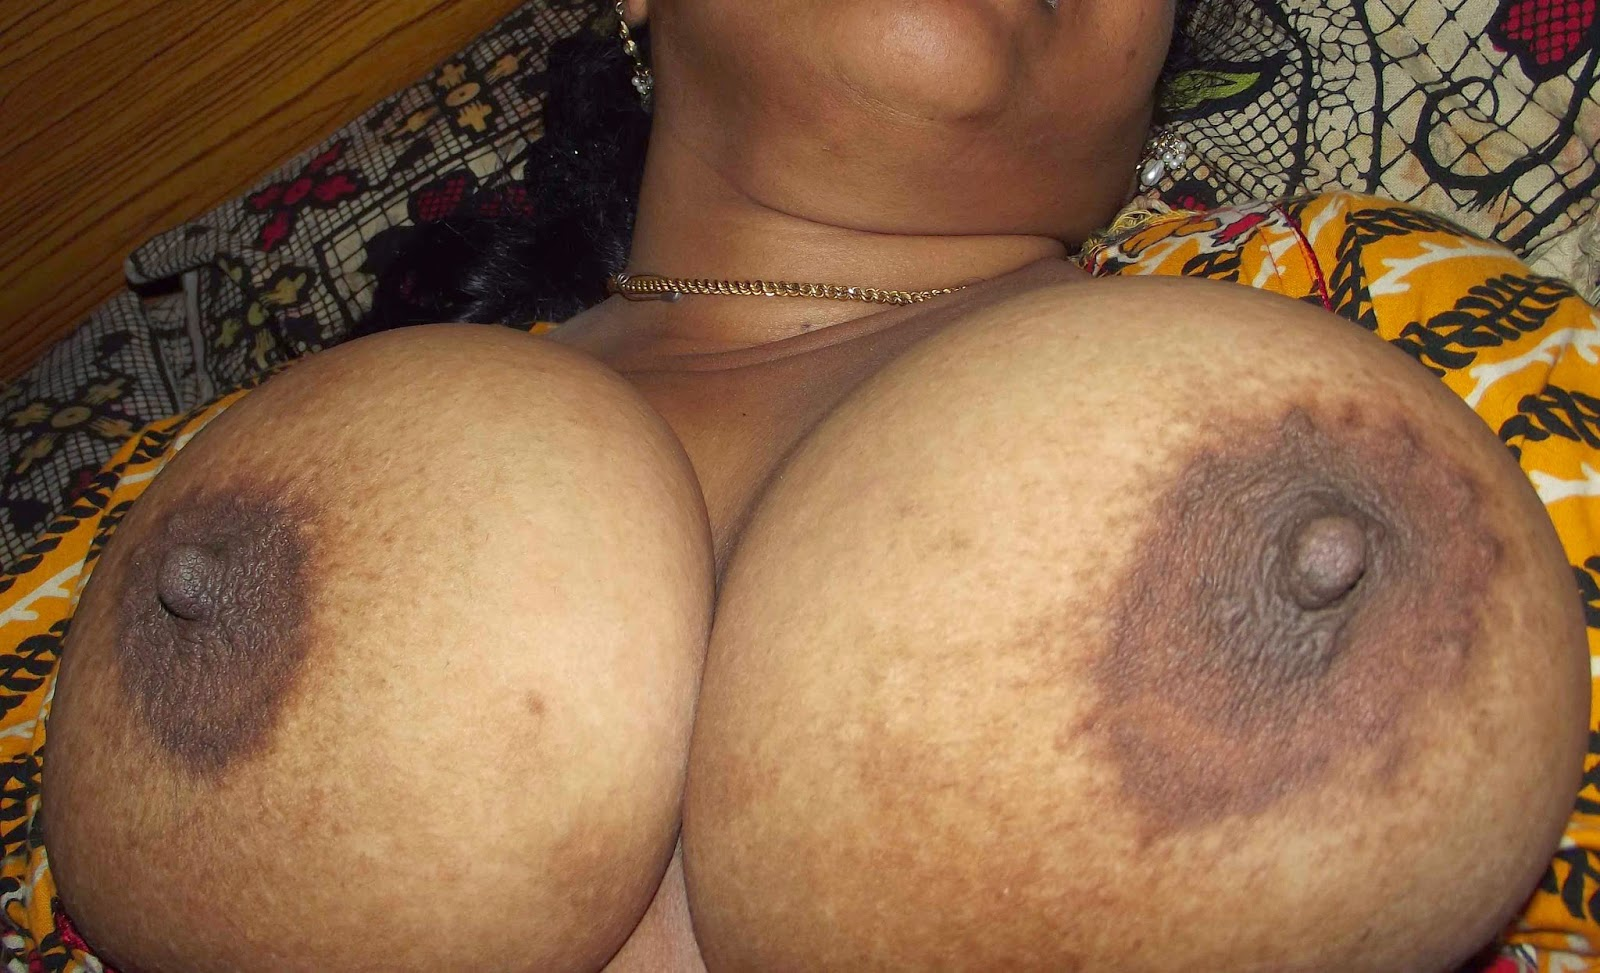 aunty big soxxip Indian pic nacked